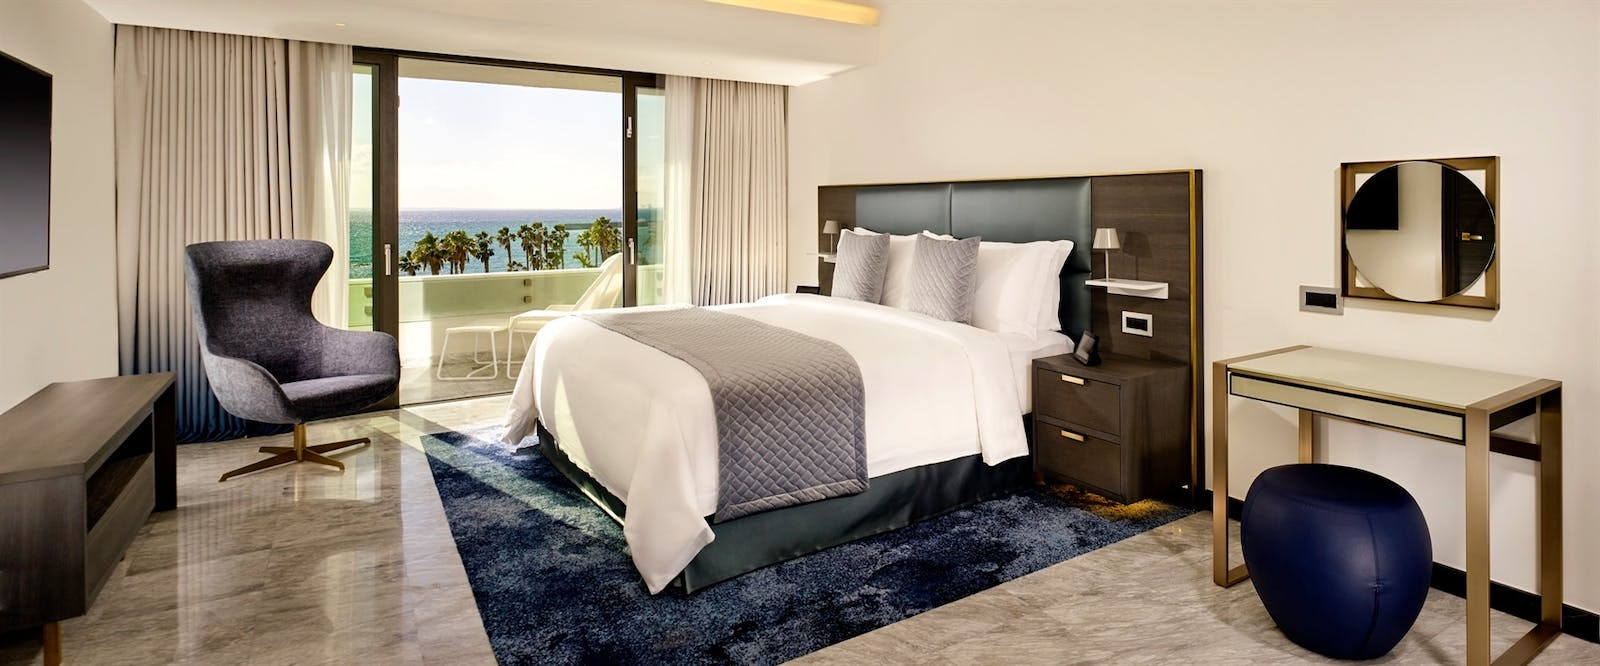 Lifestyle Suite with Sea View at Parklane, a Luxury Collection Resort & Spa, Limassol, Cyprus